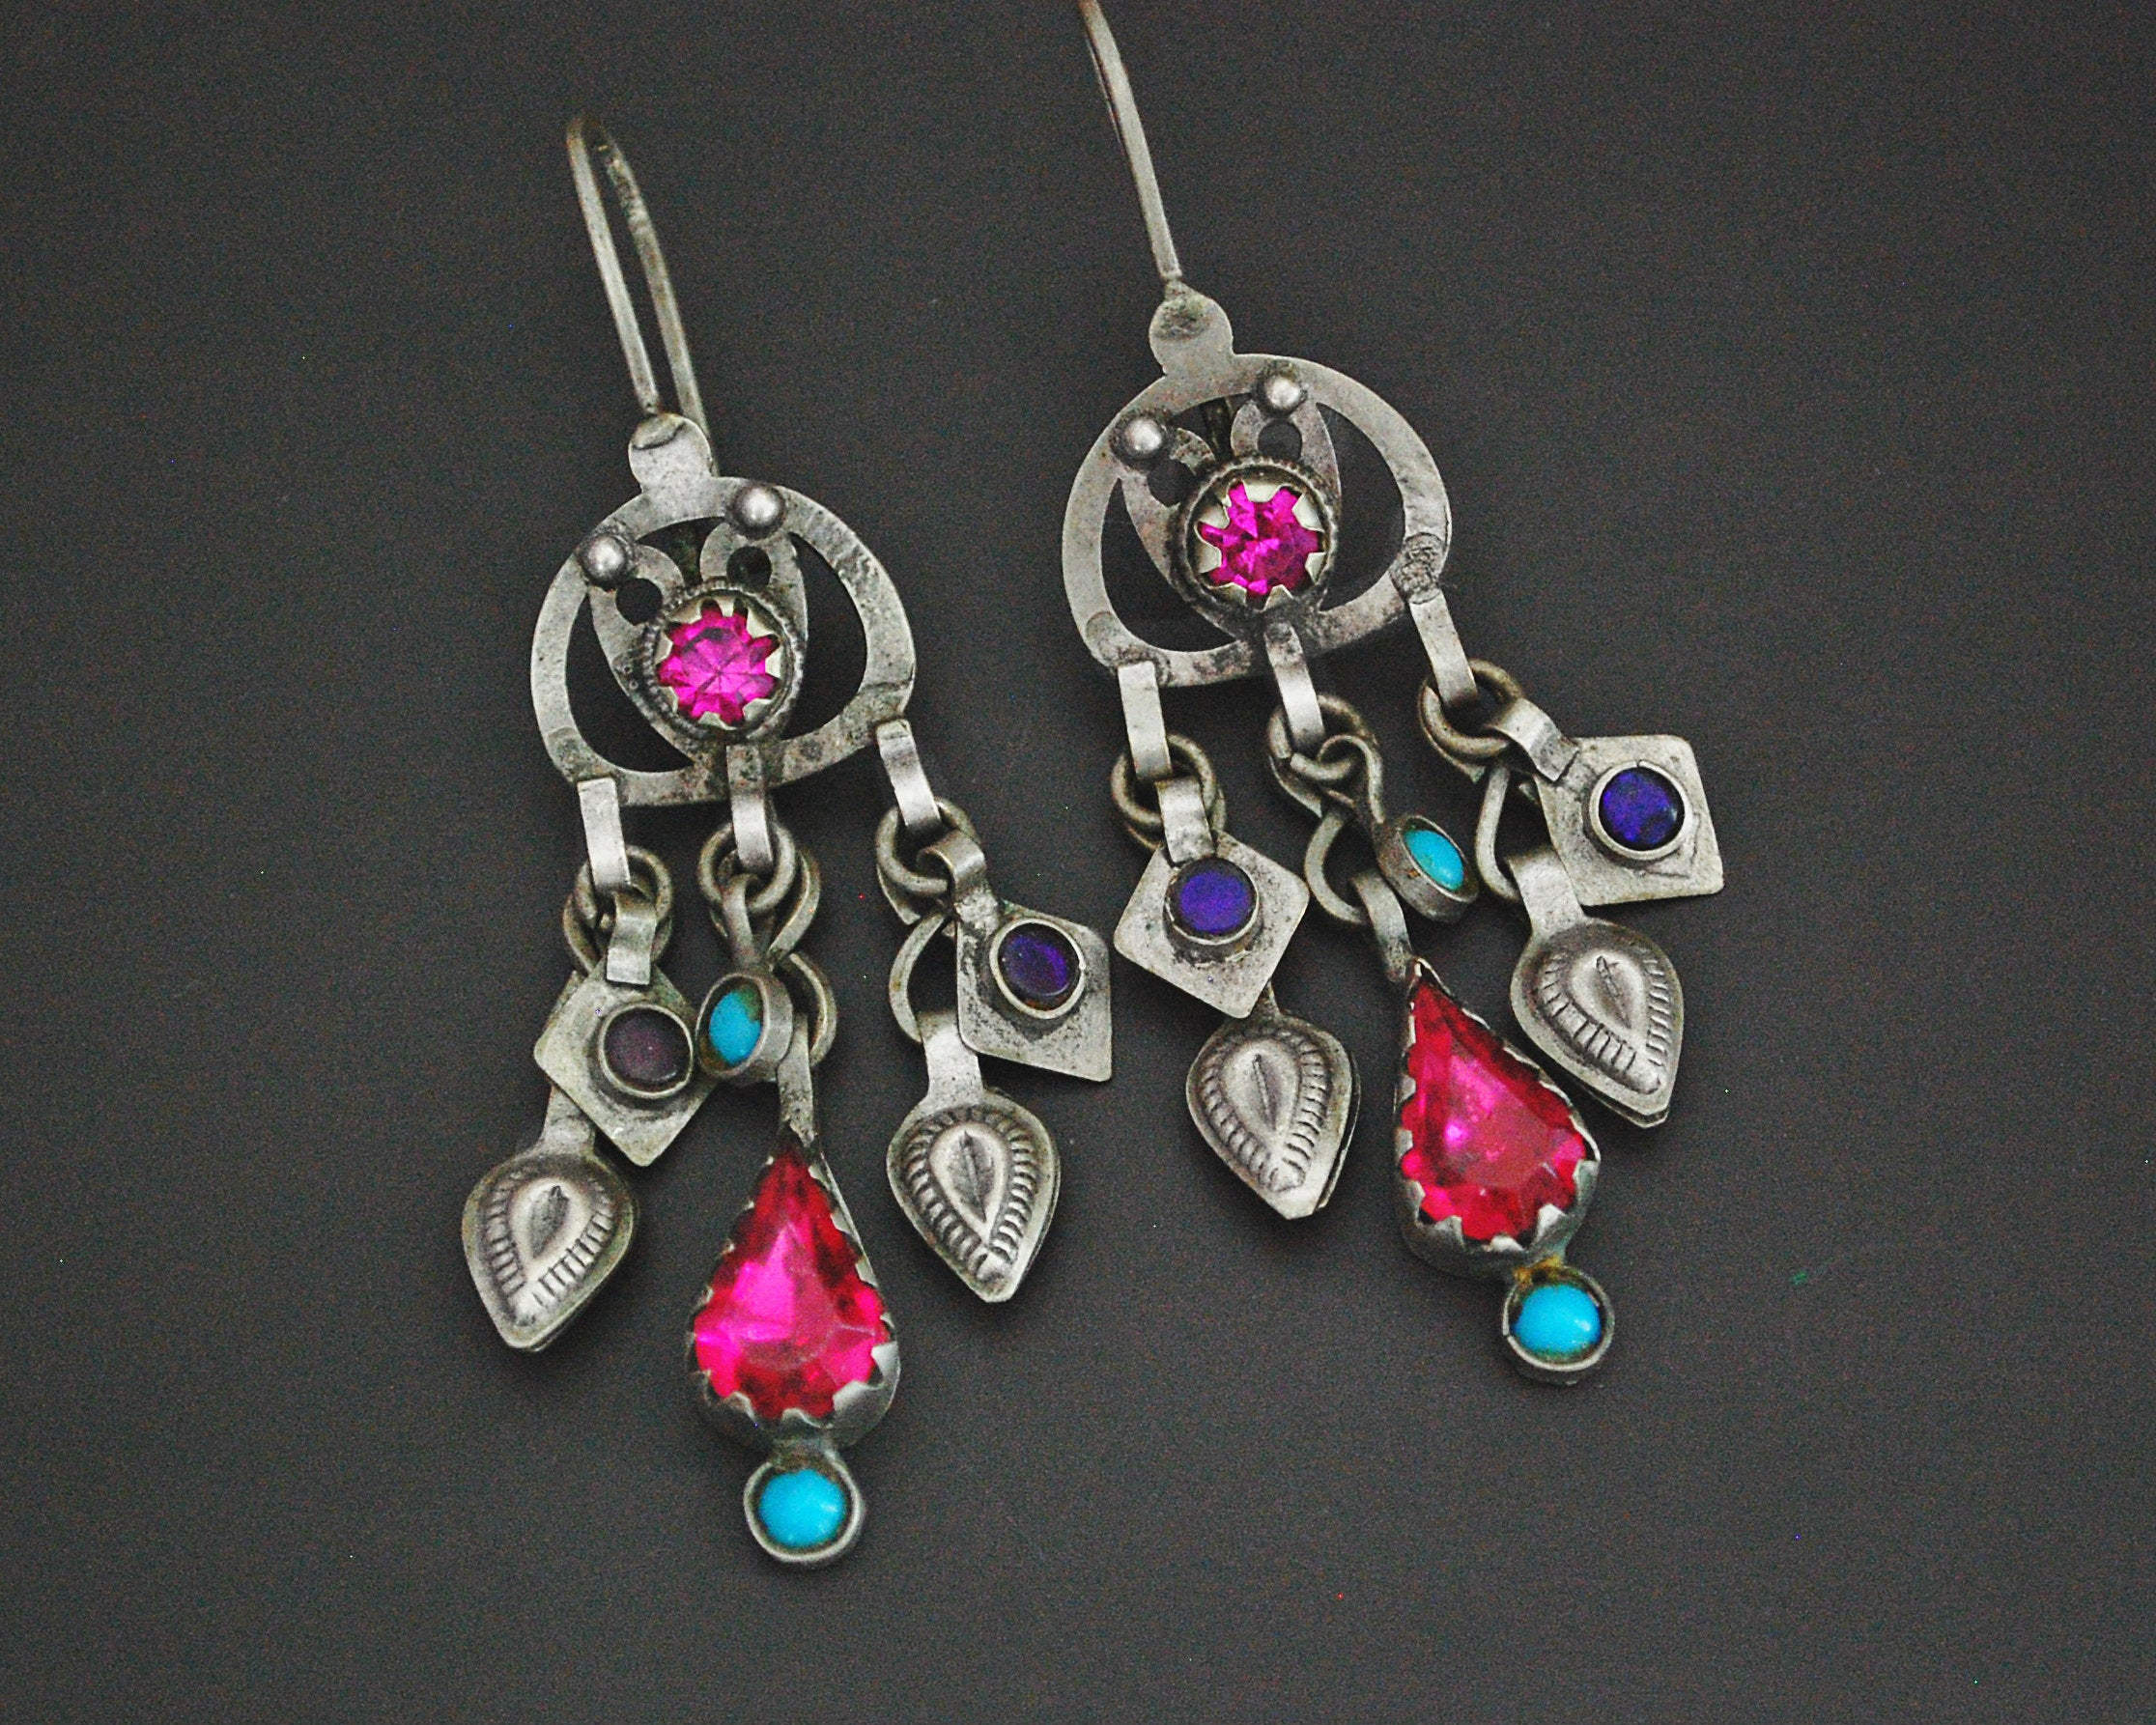 Afghani Earrings with Glass Stones and Tassels